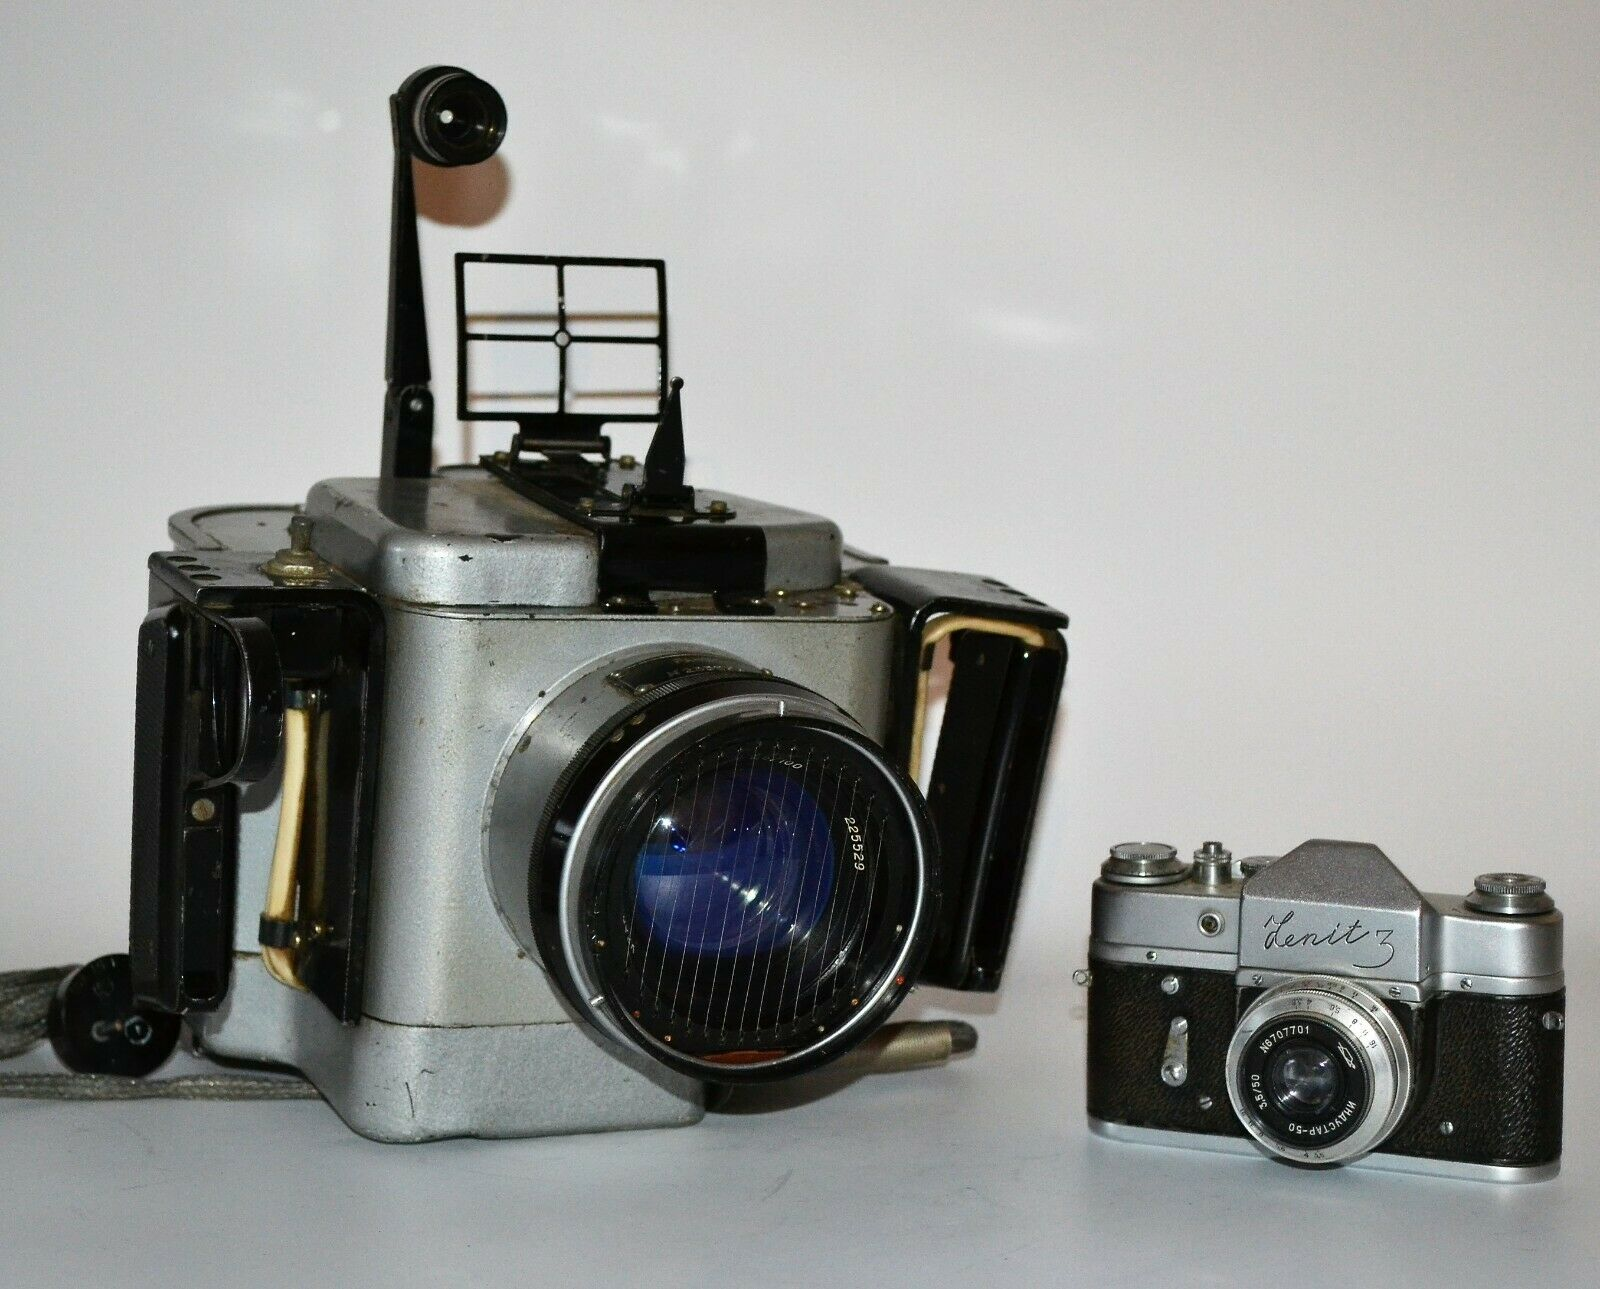 RA-39A camera with Zenit-3 (Pic: Salefromdollar/eBay)